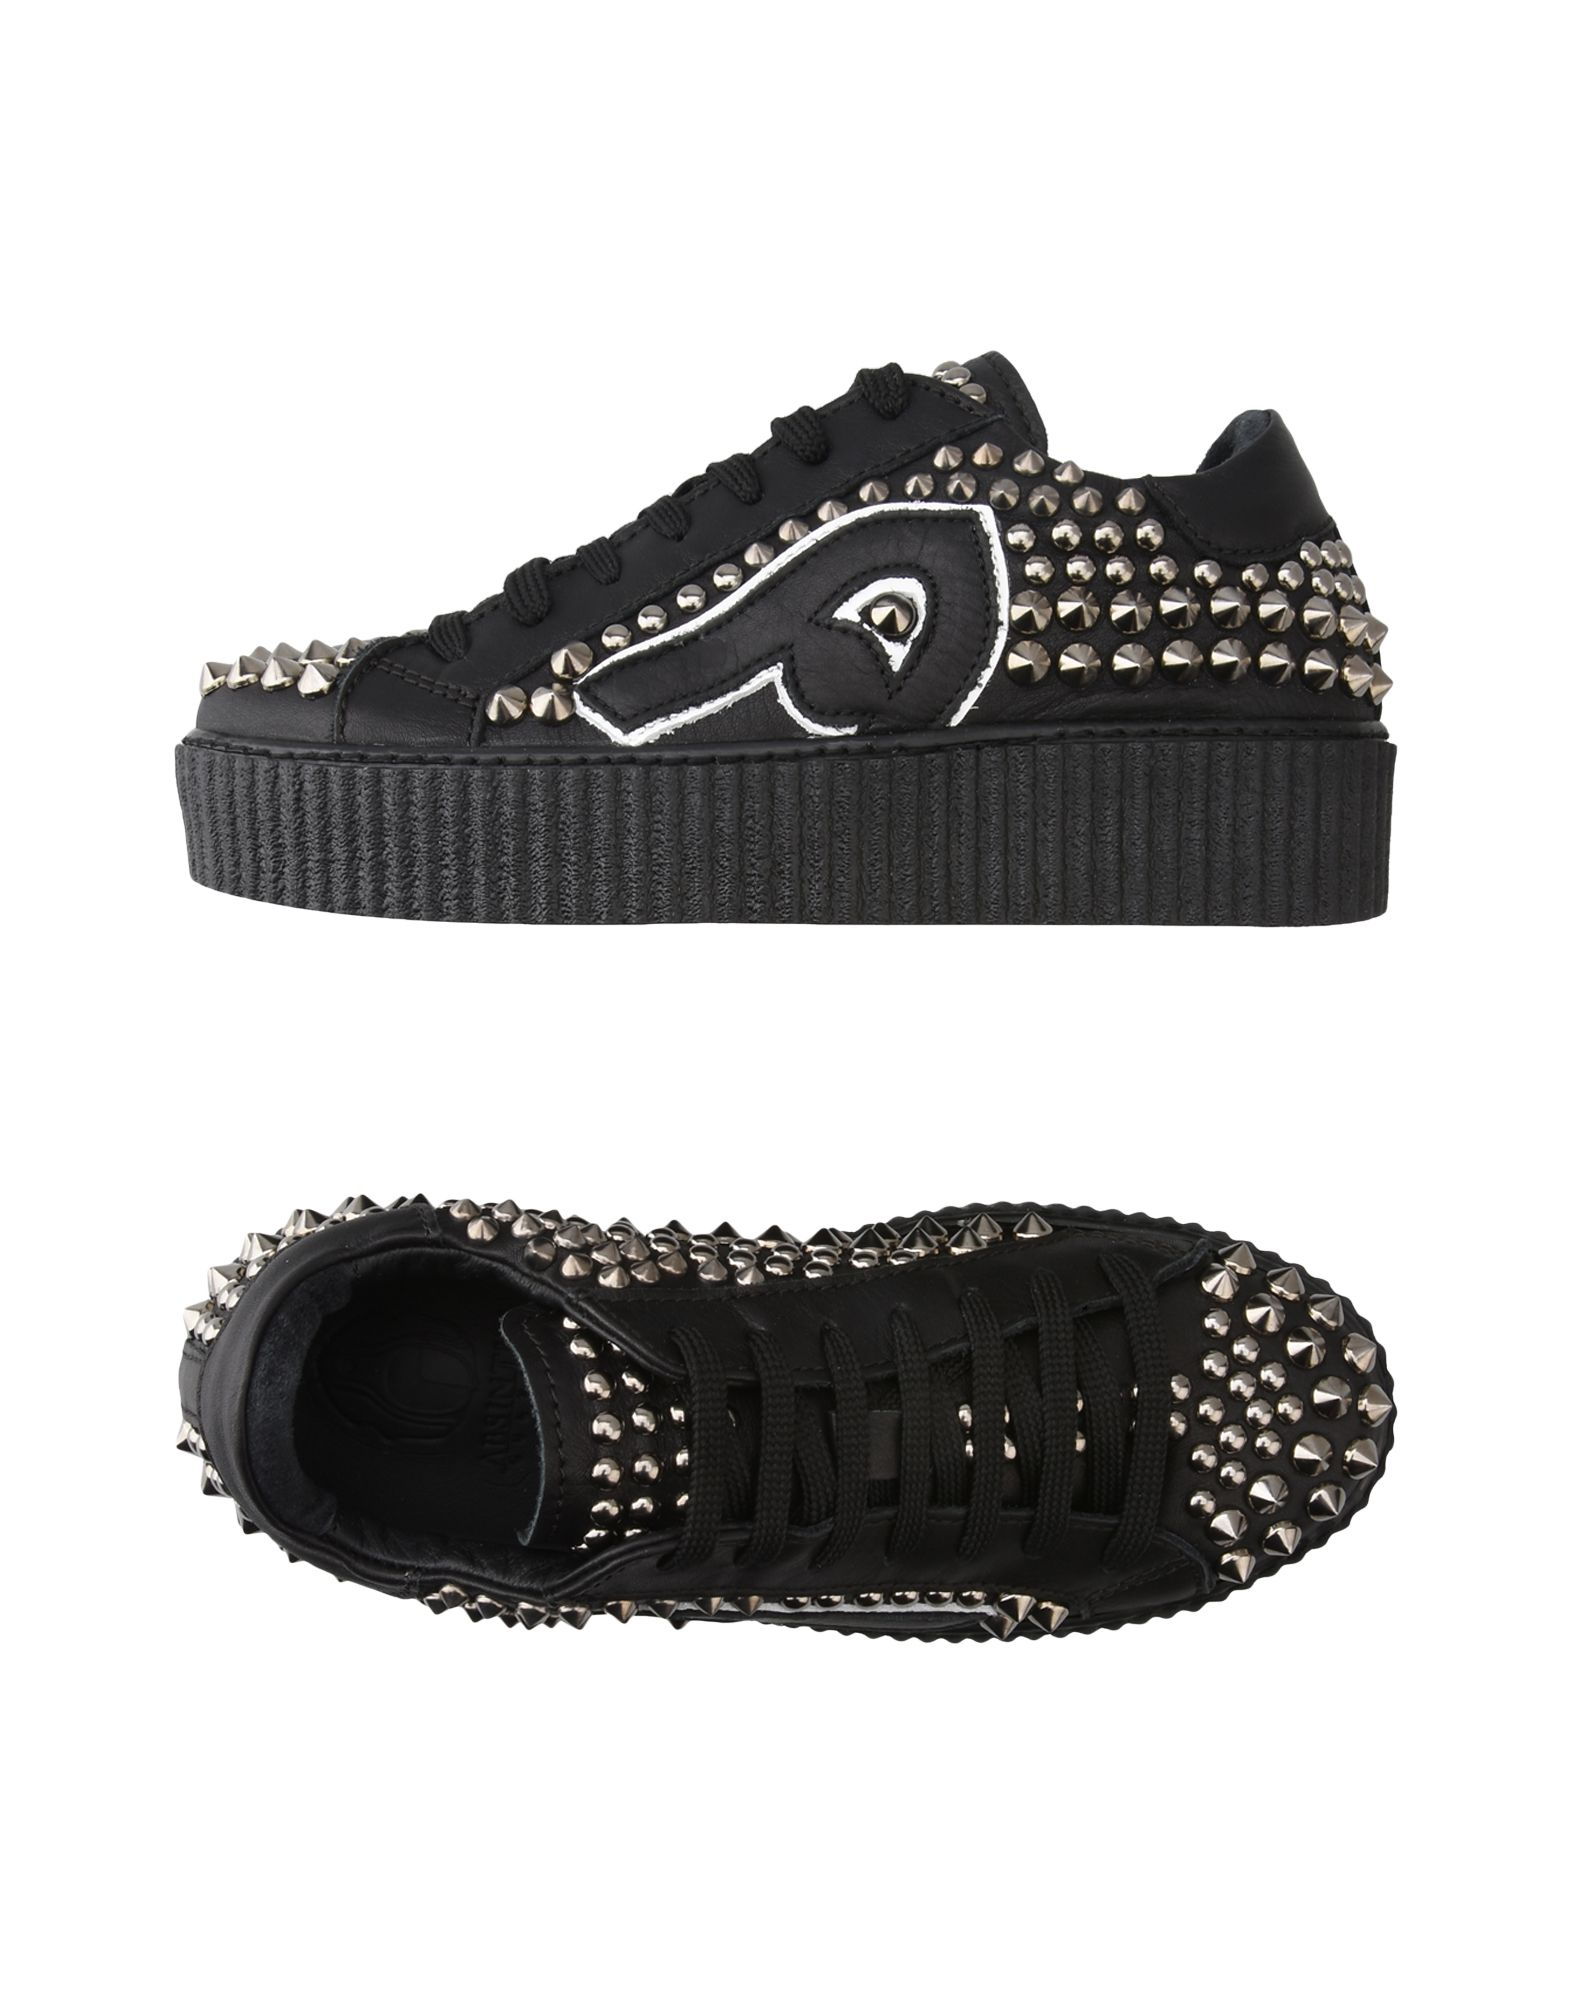 Sneakers Absinthe Culture Bl28 Black+Cannadi Fucile - Donna - 11195429OD